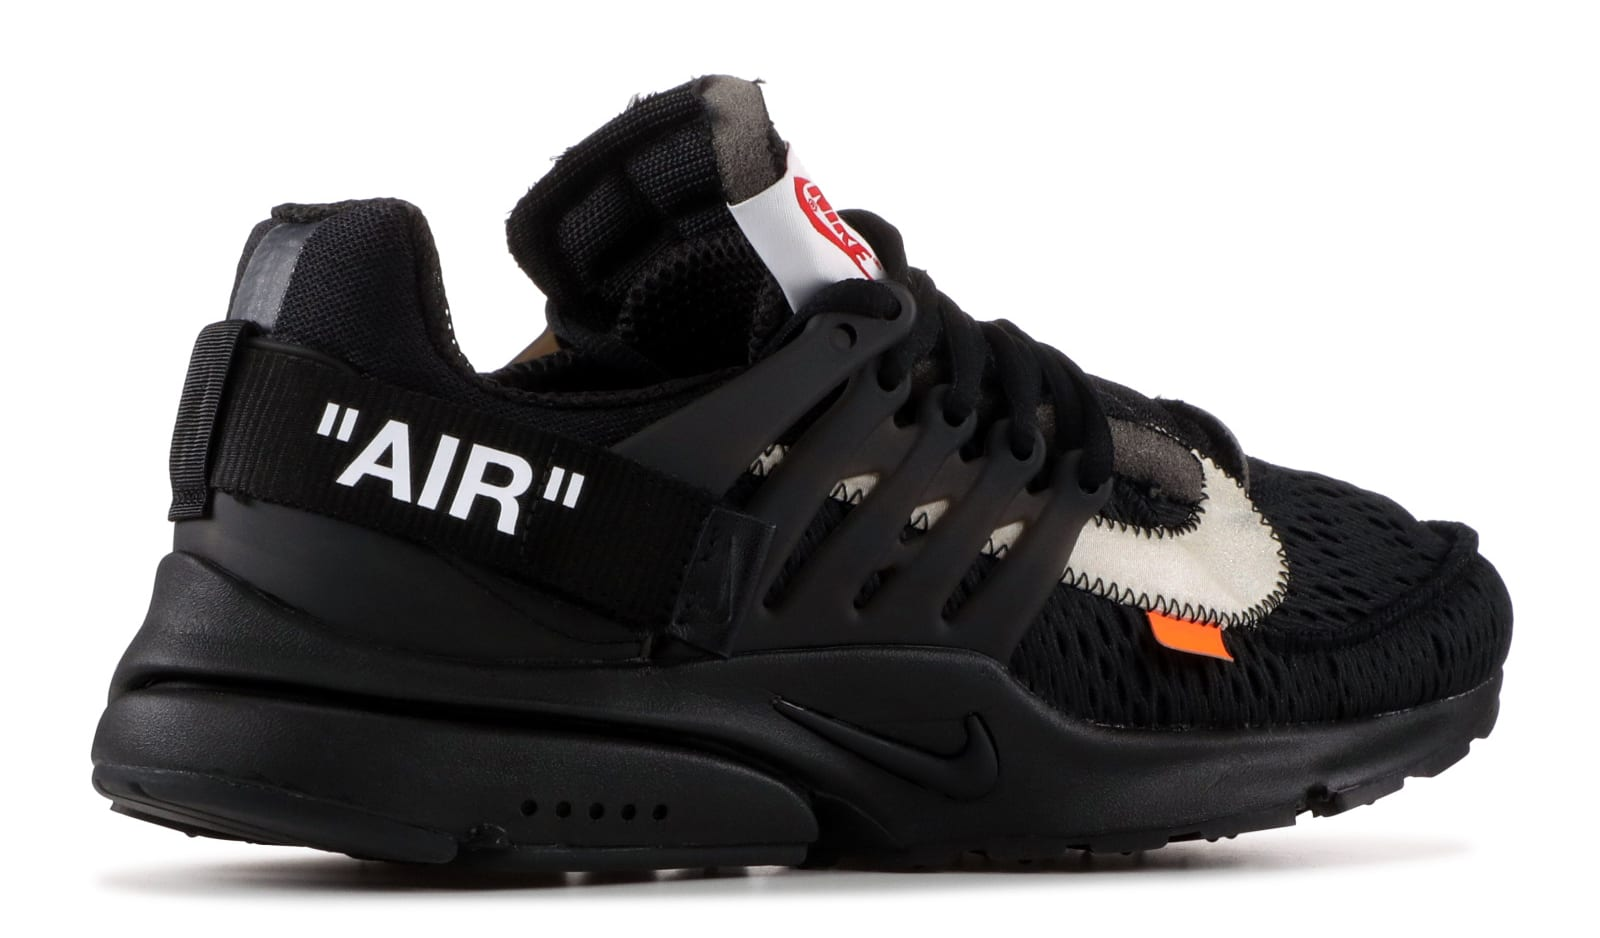 cd6b46e526f4f0 Image via Flight Club Off-White x Nike Air Presto  Black  AA3830-002 ...